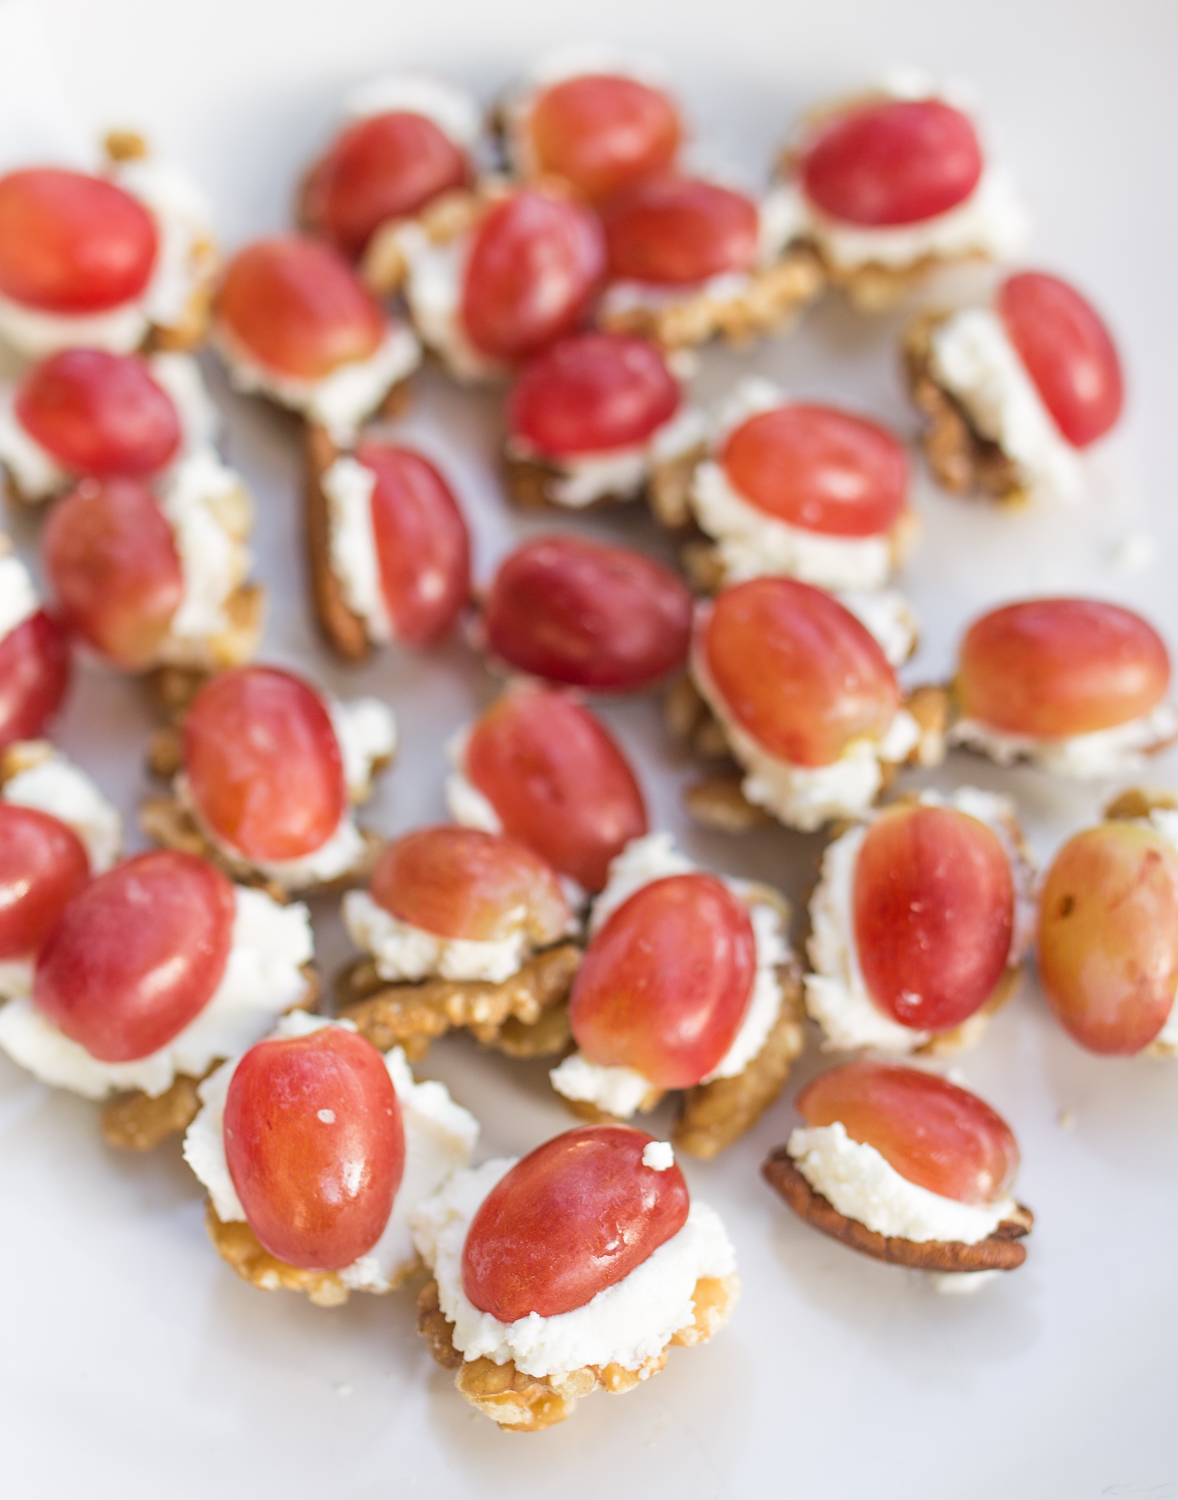 Easy Party Appetizer: Grapes, Goat Cheese and Nuts | InspiredRD.com